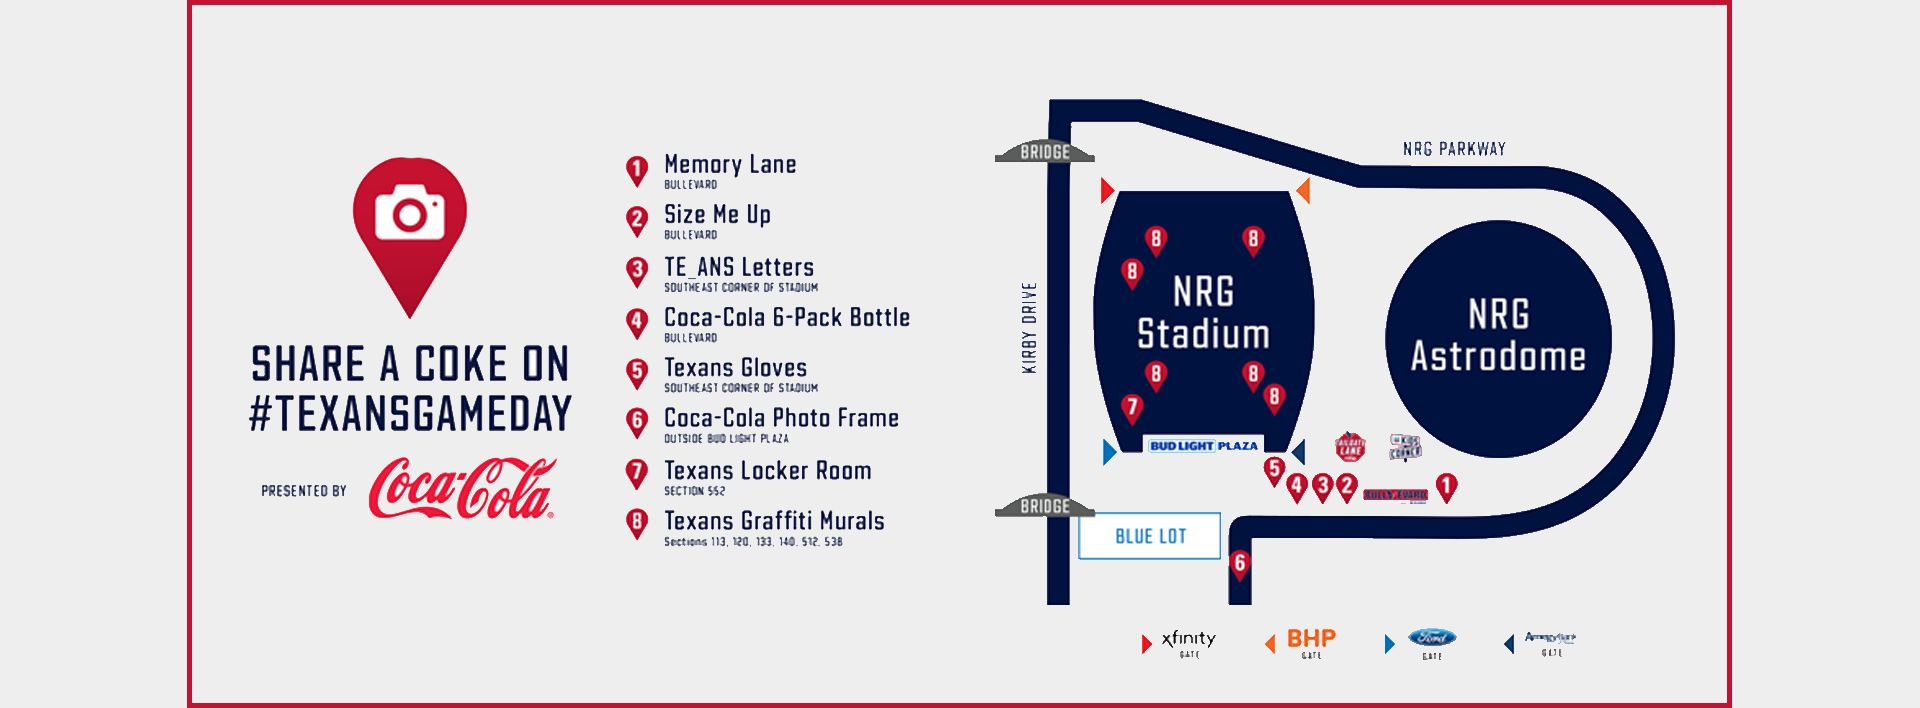 Share a Coke on hashtag Texans Gameday. Presented by Coca-Cola. Pictured is a map of photo opportunities. 1. Memory lane in the boulevard. 2. Size me Up on the boulevard. 3. Texans Letters at the southeast corner of the stadium. 4. Coca-Cola 6 pack bottles in the boulevard. 7. Texans locker room at section 552. 8. Texans graffiti murals at sections 113, 120, 133, 140,512, and 538.